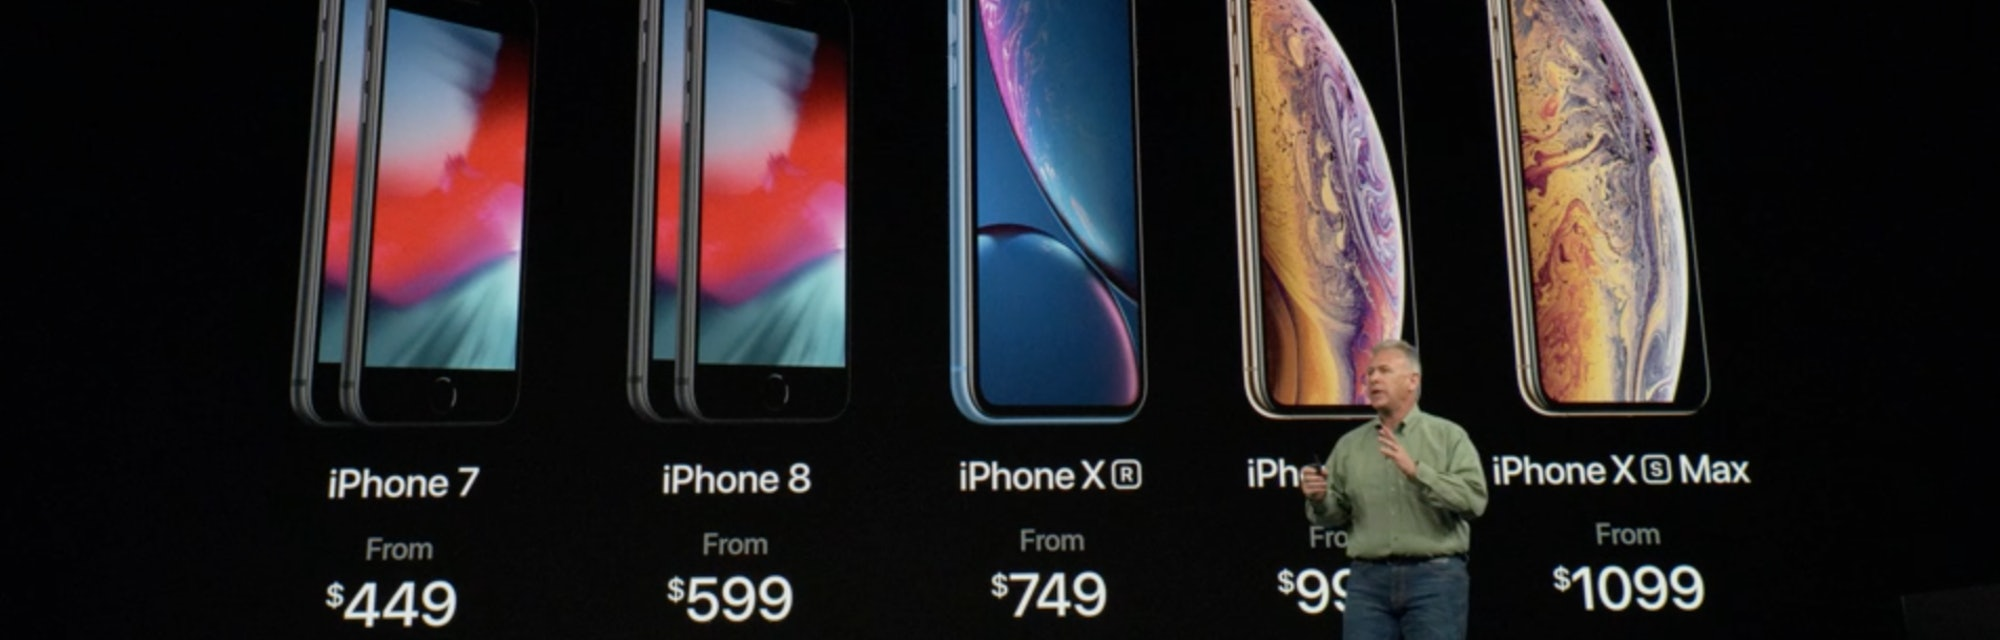 When Will Iphone 8 And Iphone X Reach Cheapest Prices